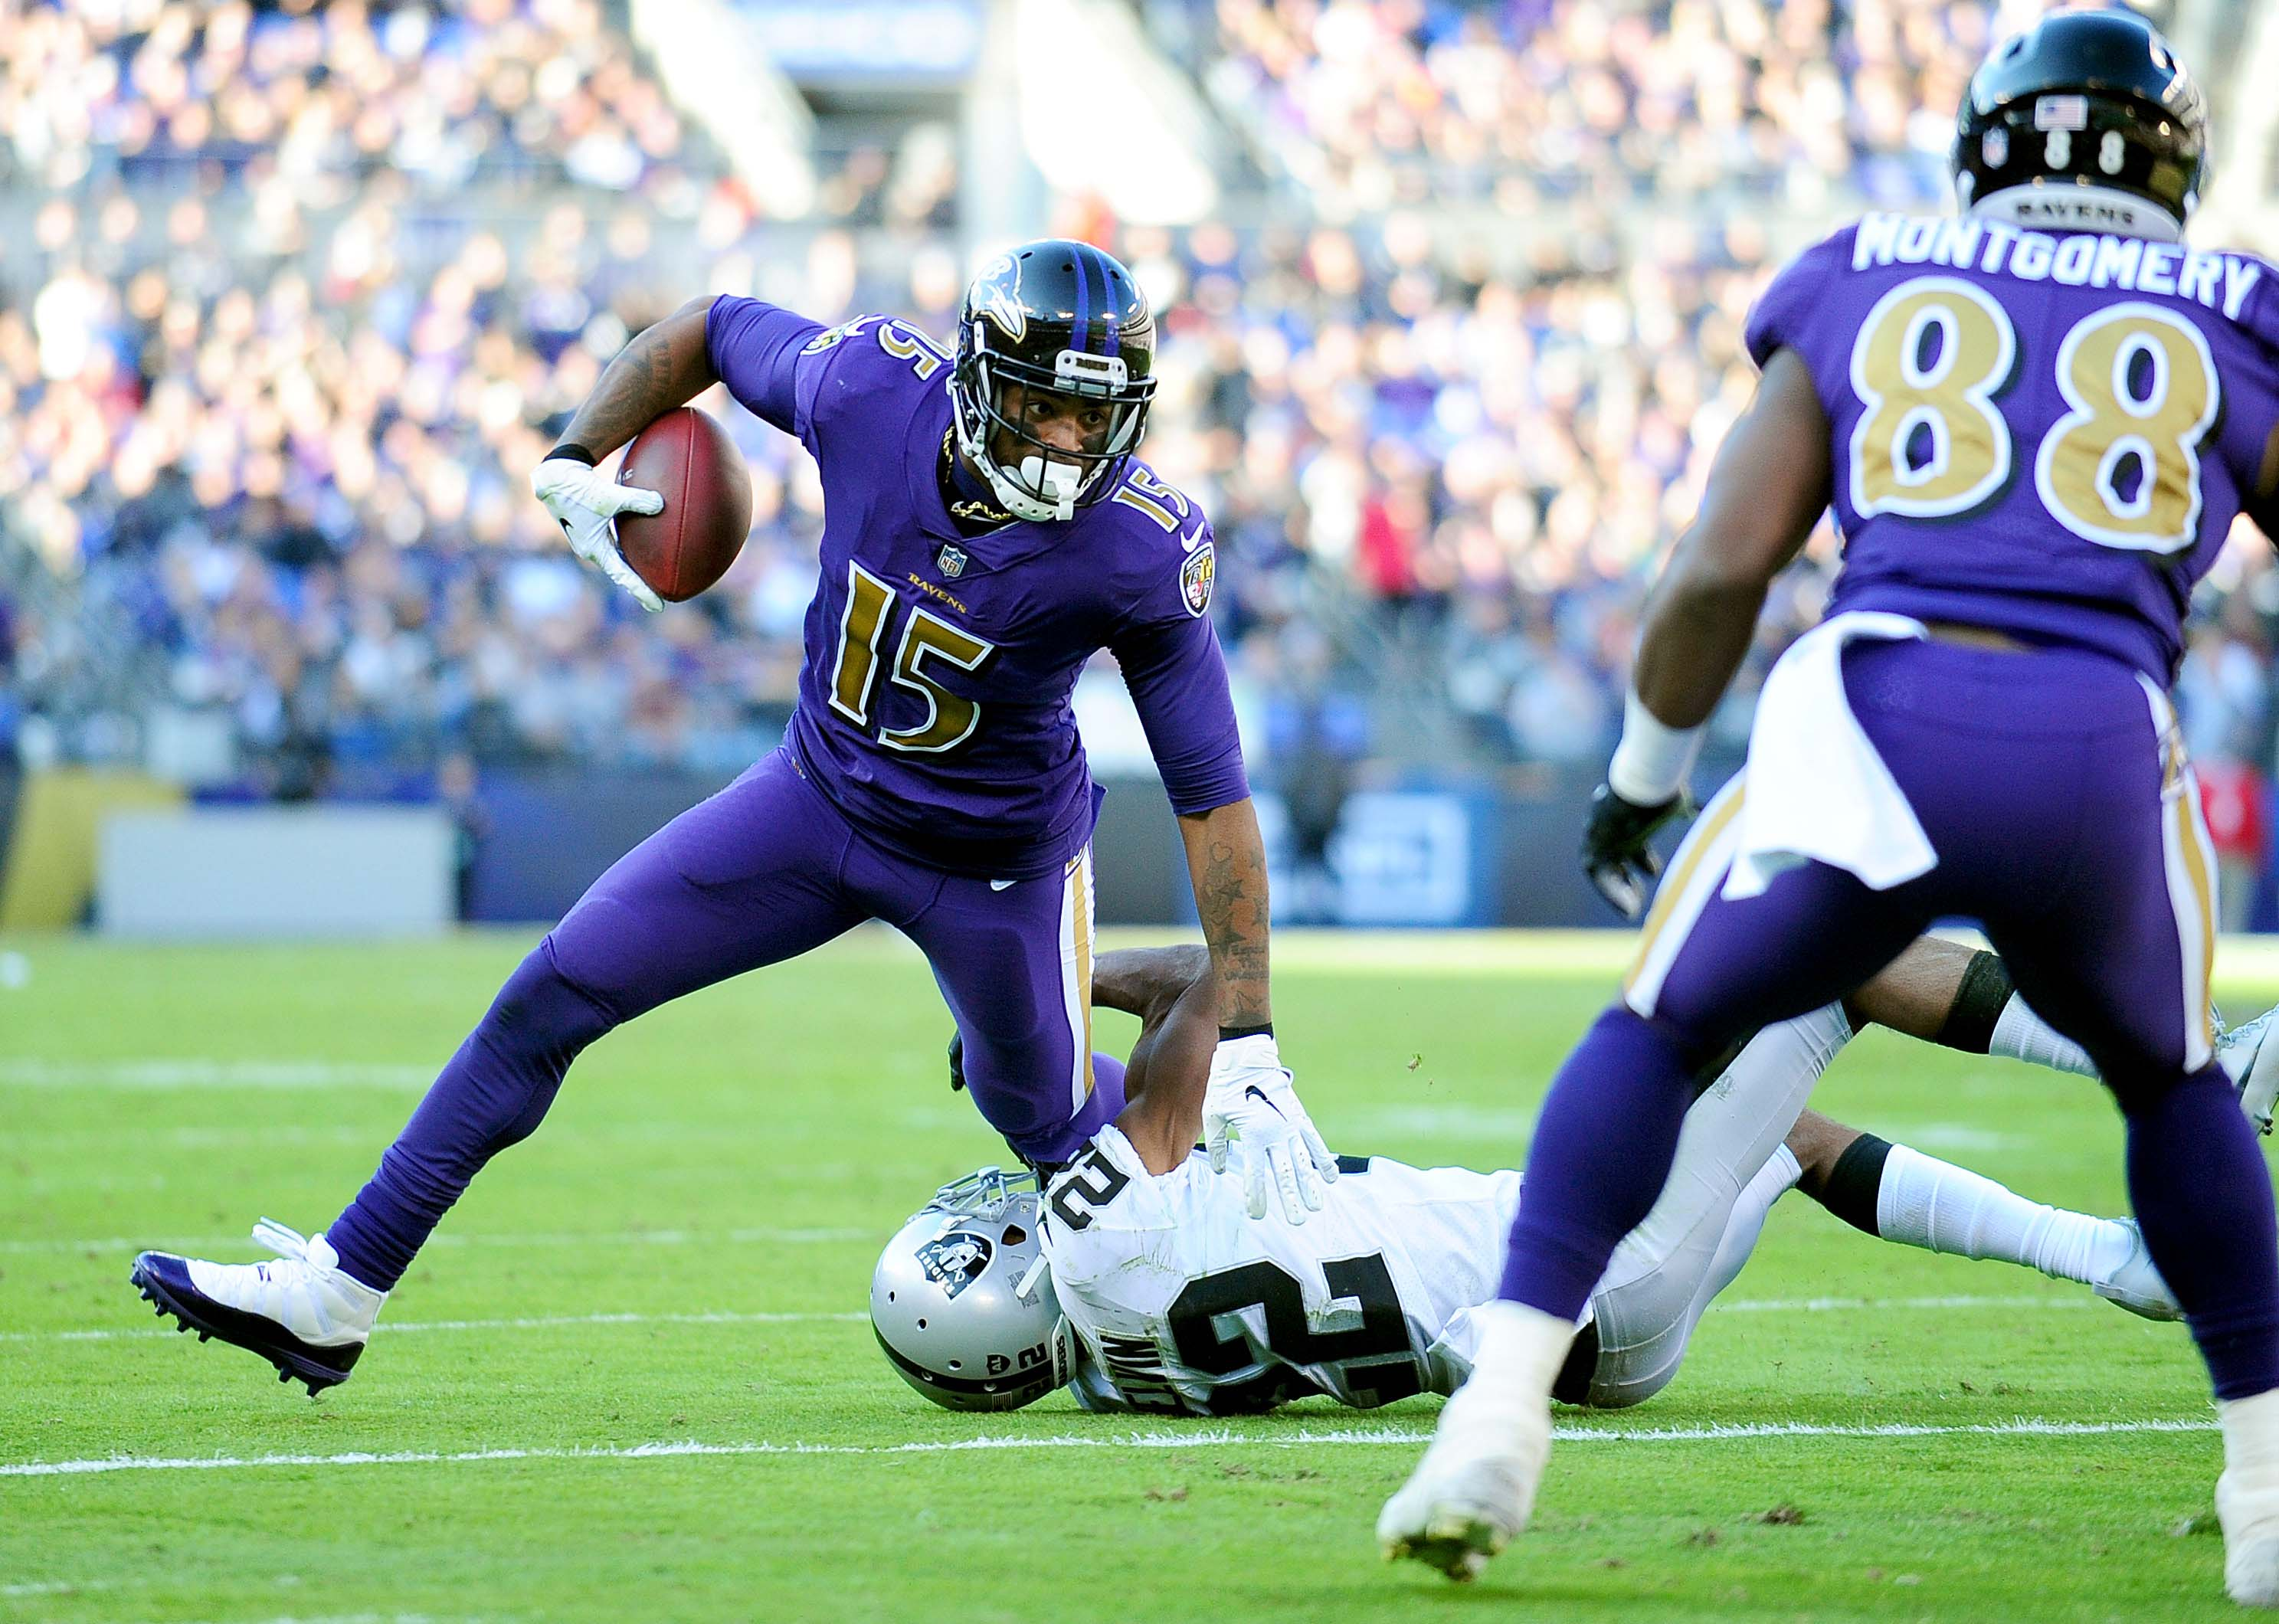 Ravens release WR Michael Crabtree after one year